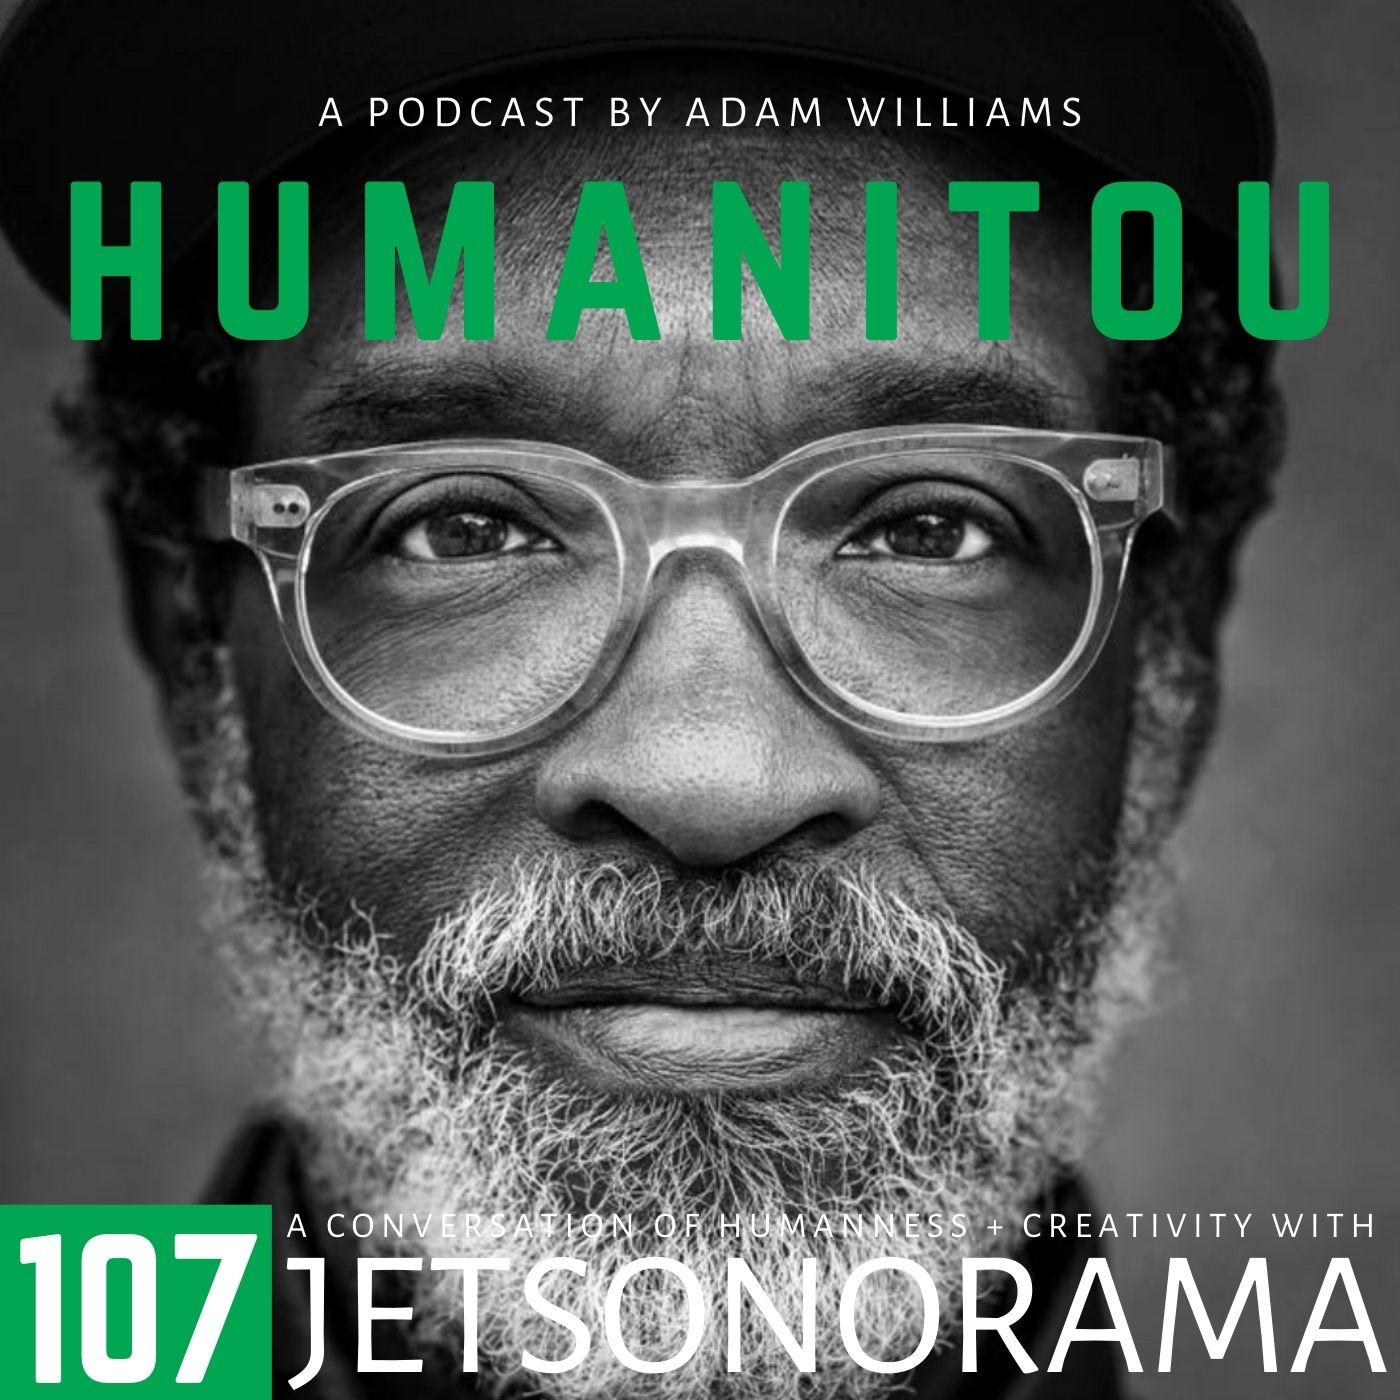 107: Chip Thomas, doctor, public artist & activist, on documentary photography, 'soul wounds' of the Navajo Nation, Quaker values, and surviving a widow-maker